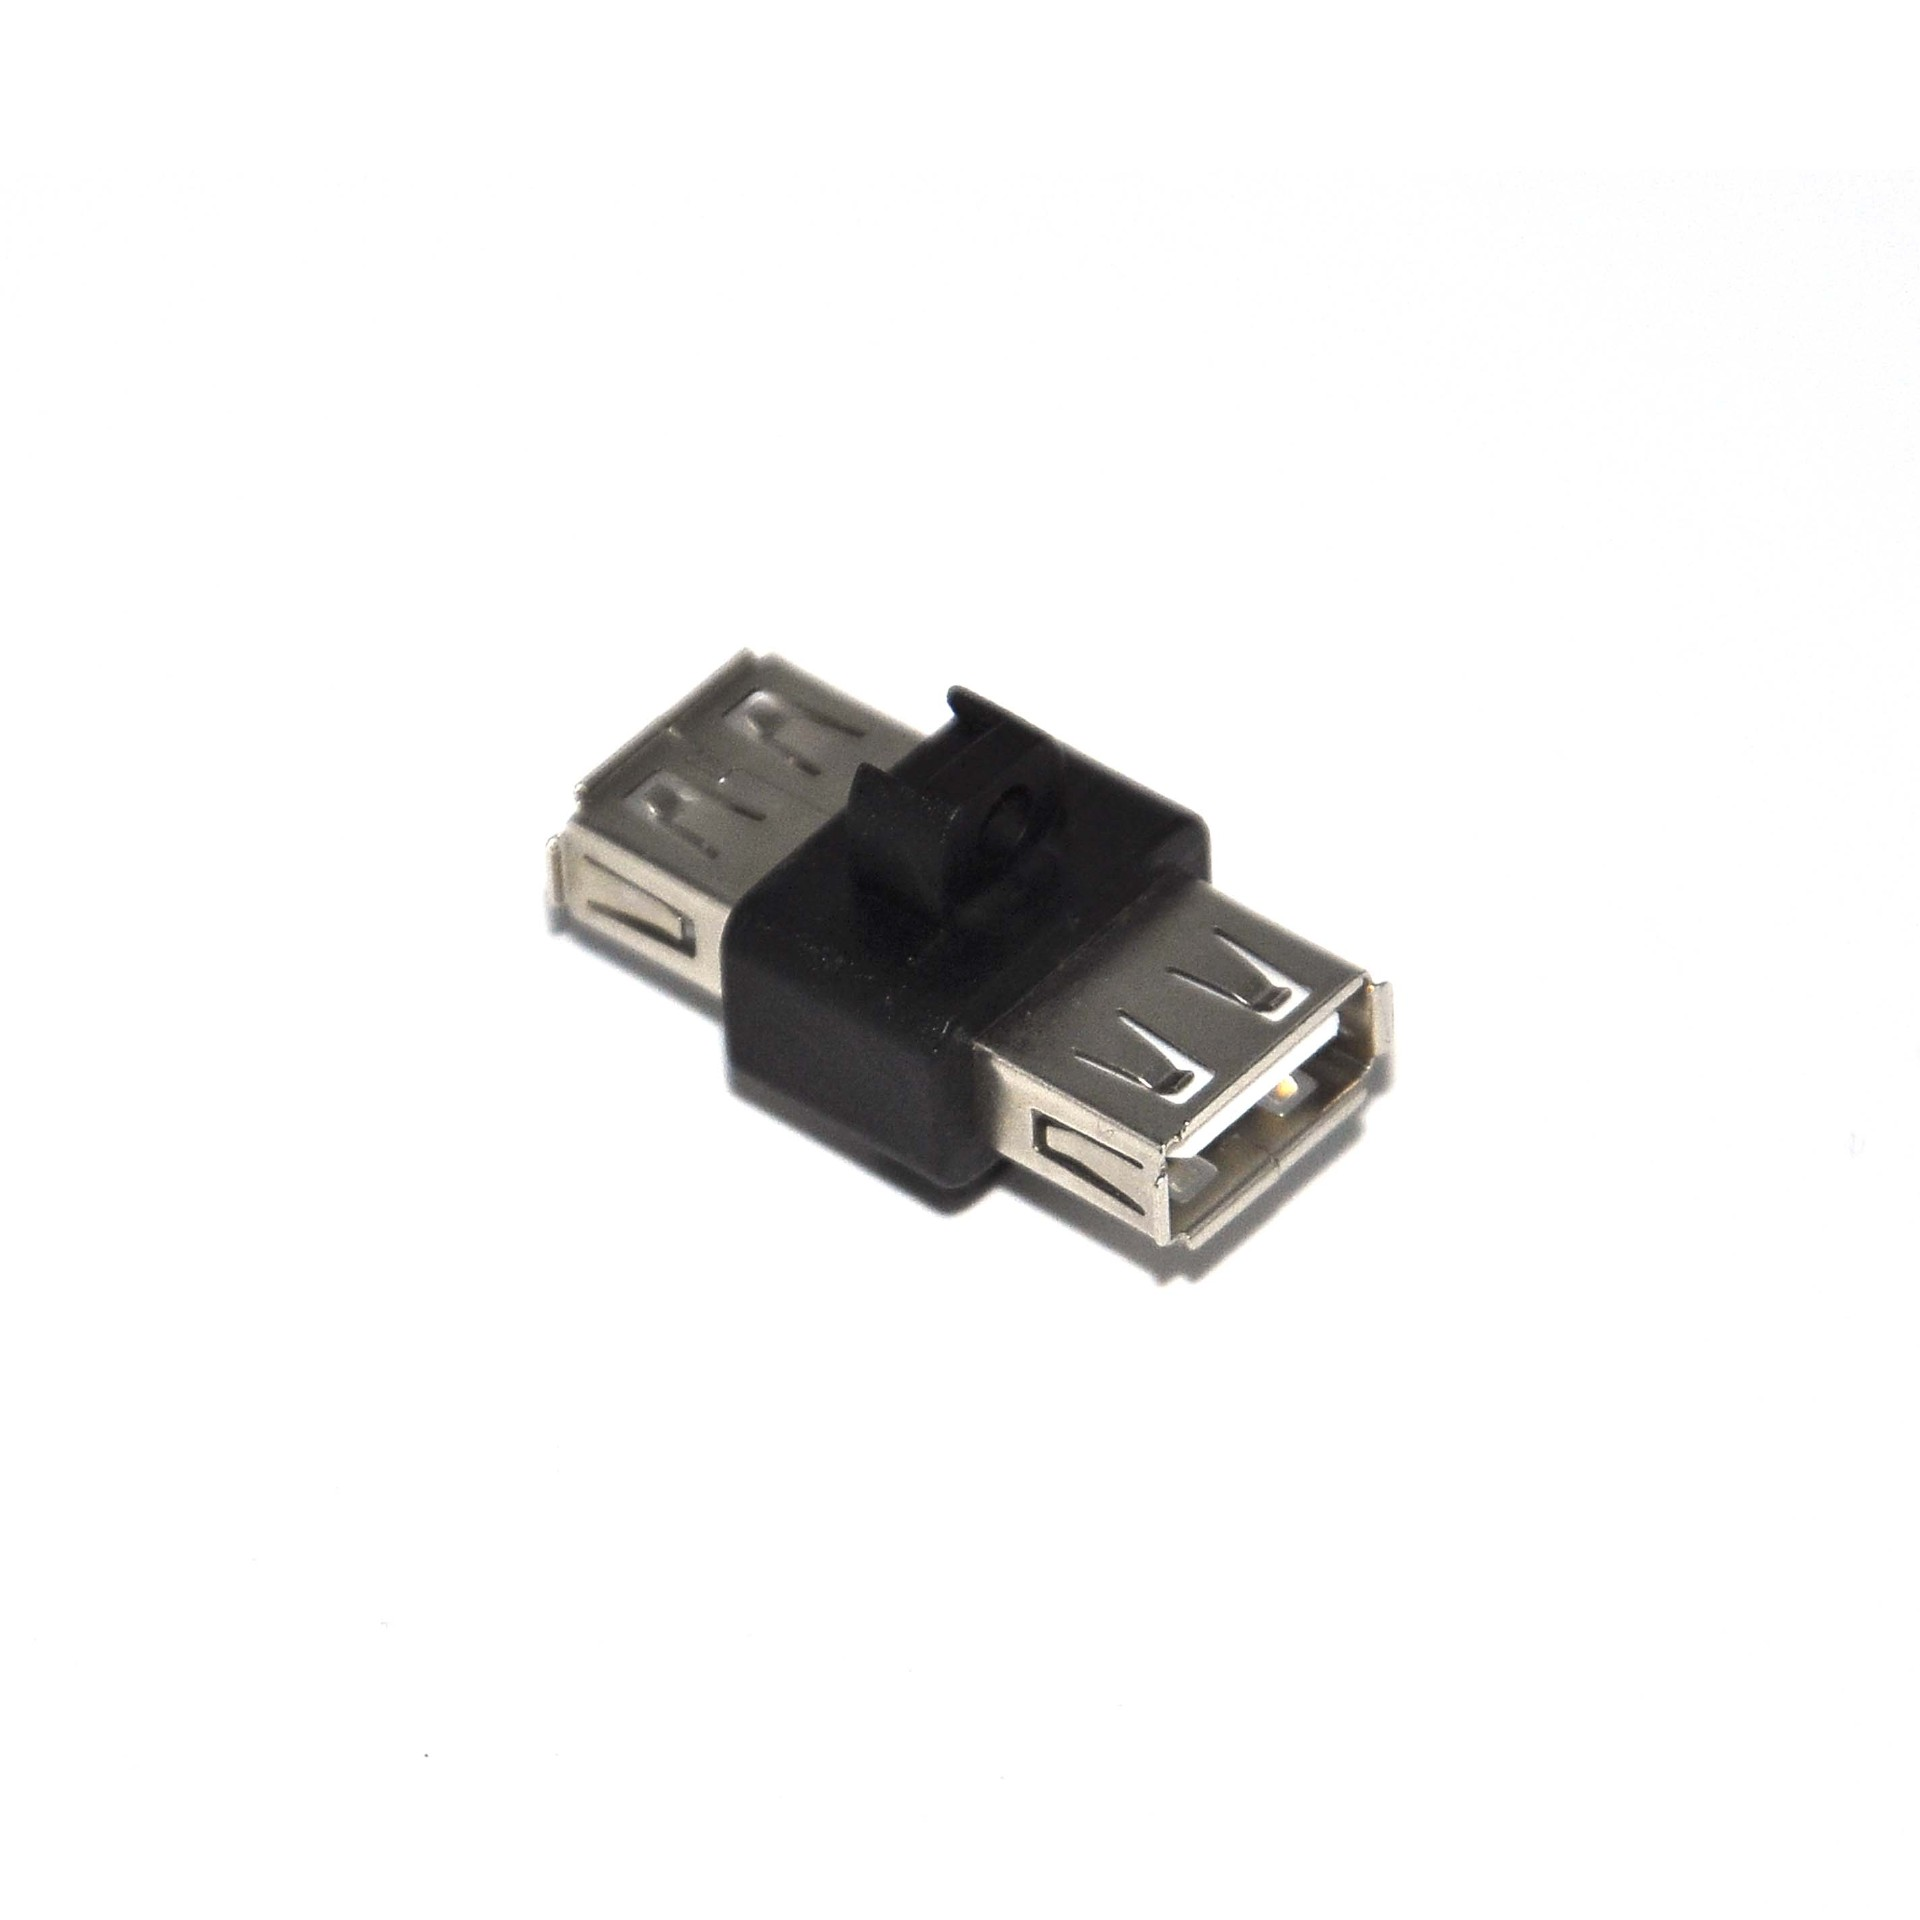 USB female adapter